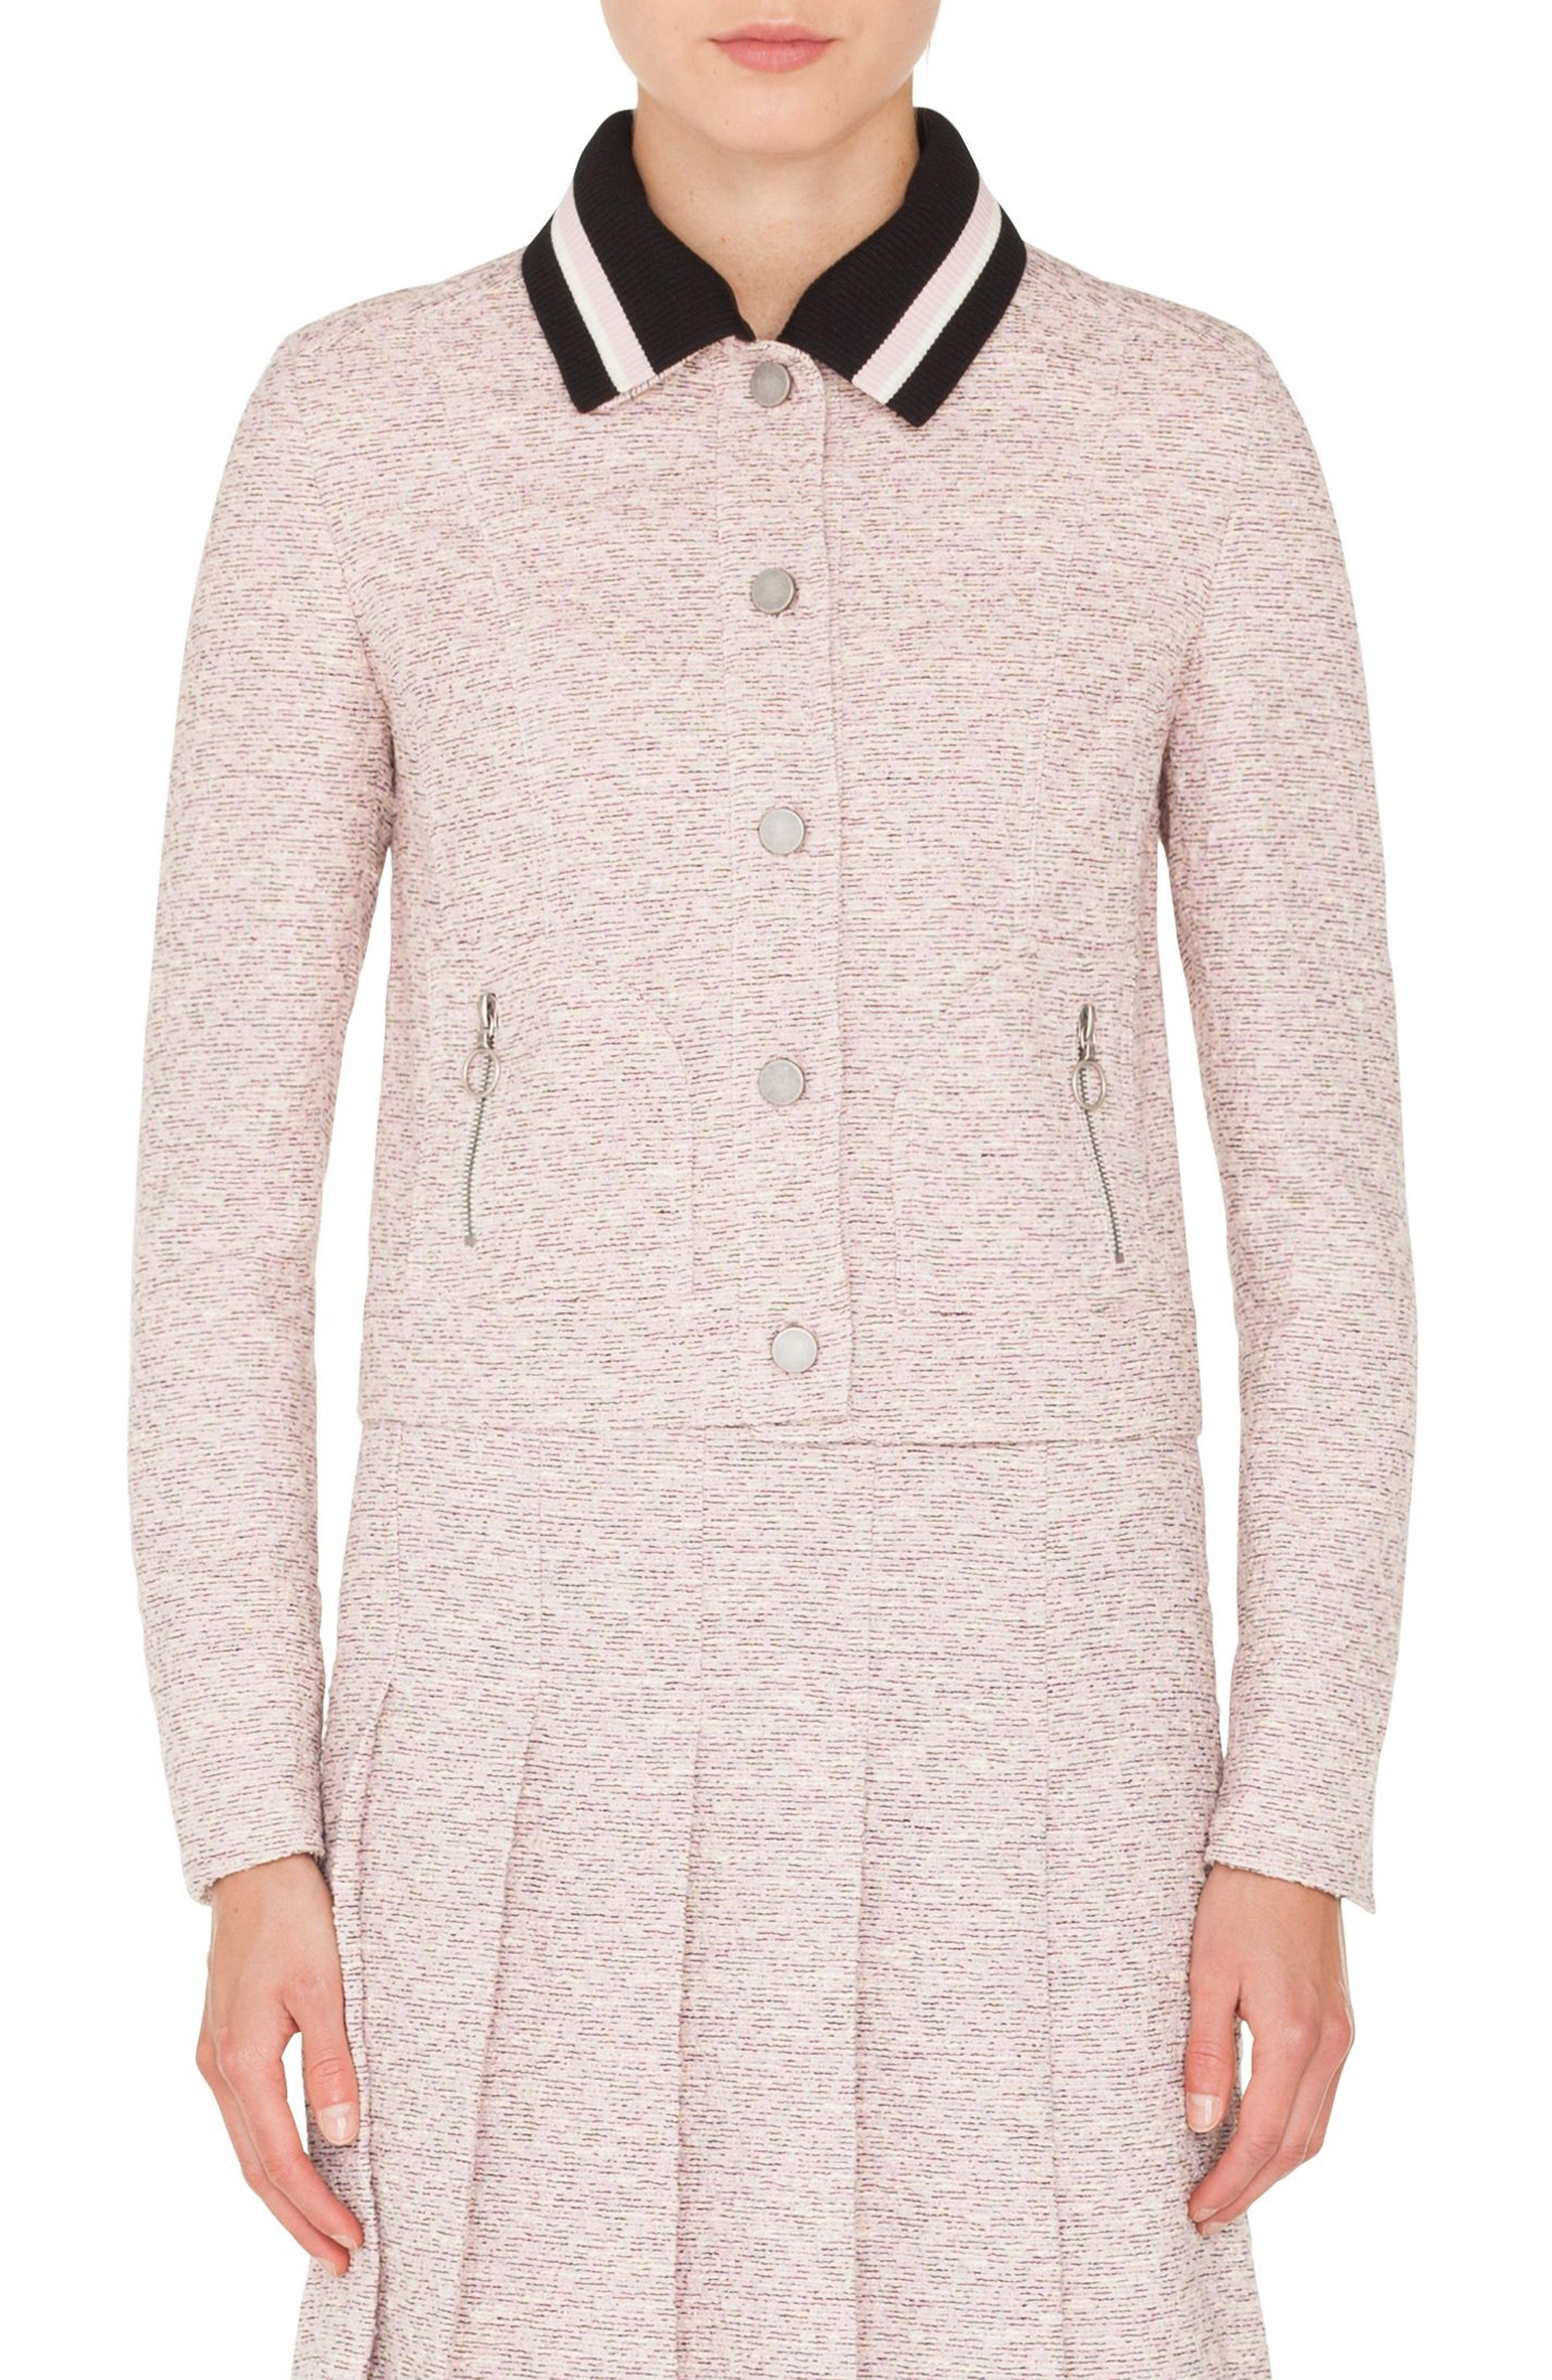 Button Front Tweed Jacket with Detachable Knit Collar,                         Main,                         color, ROSE - CREAM -